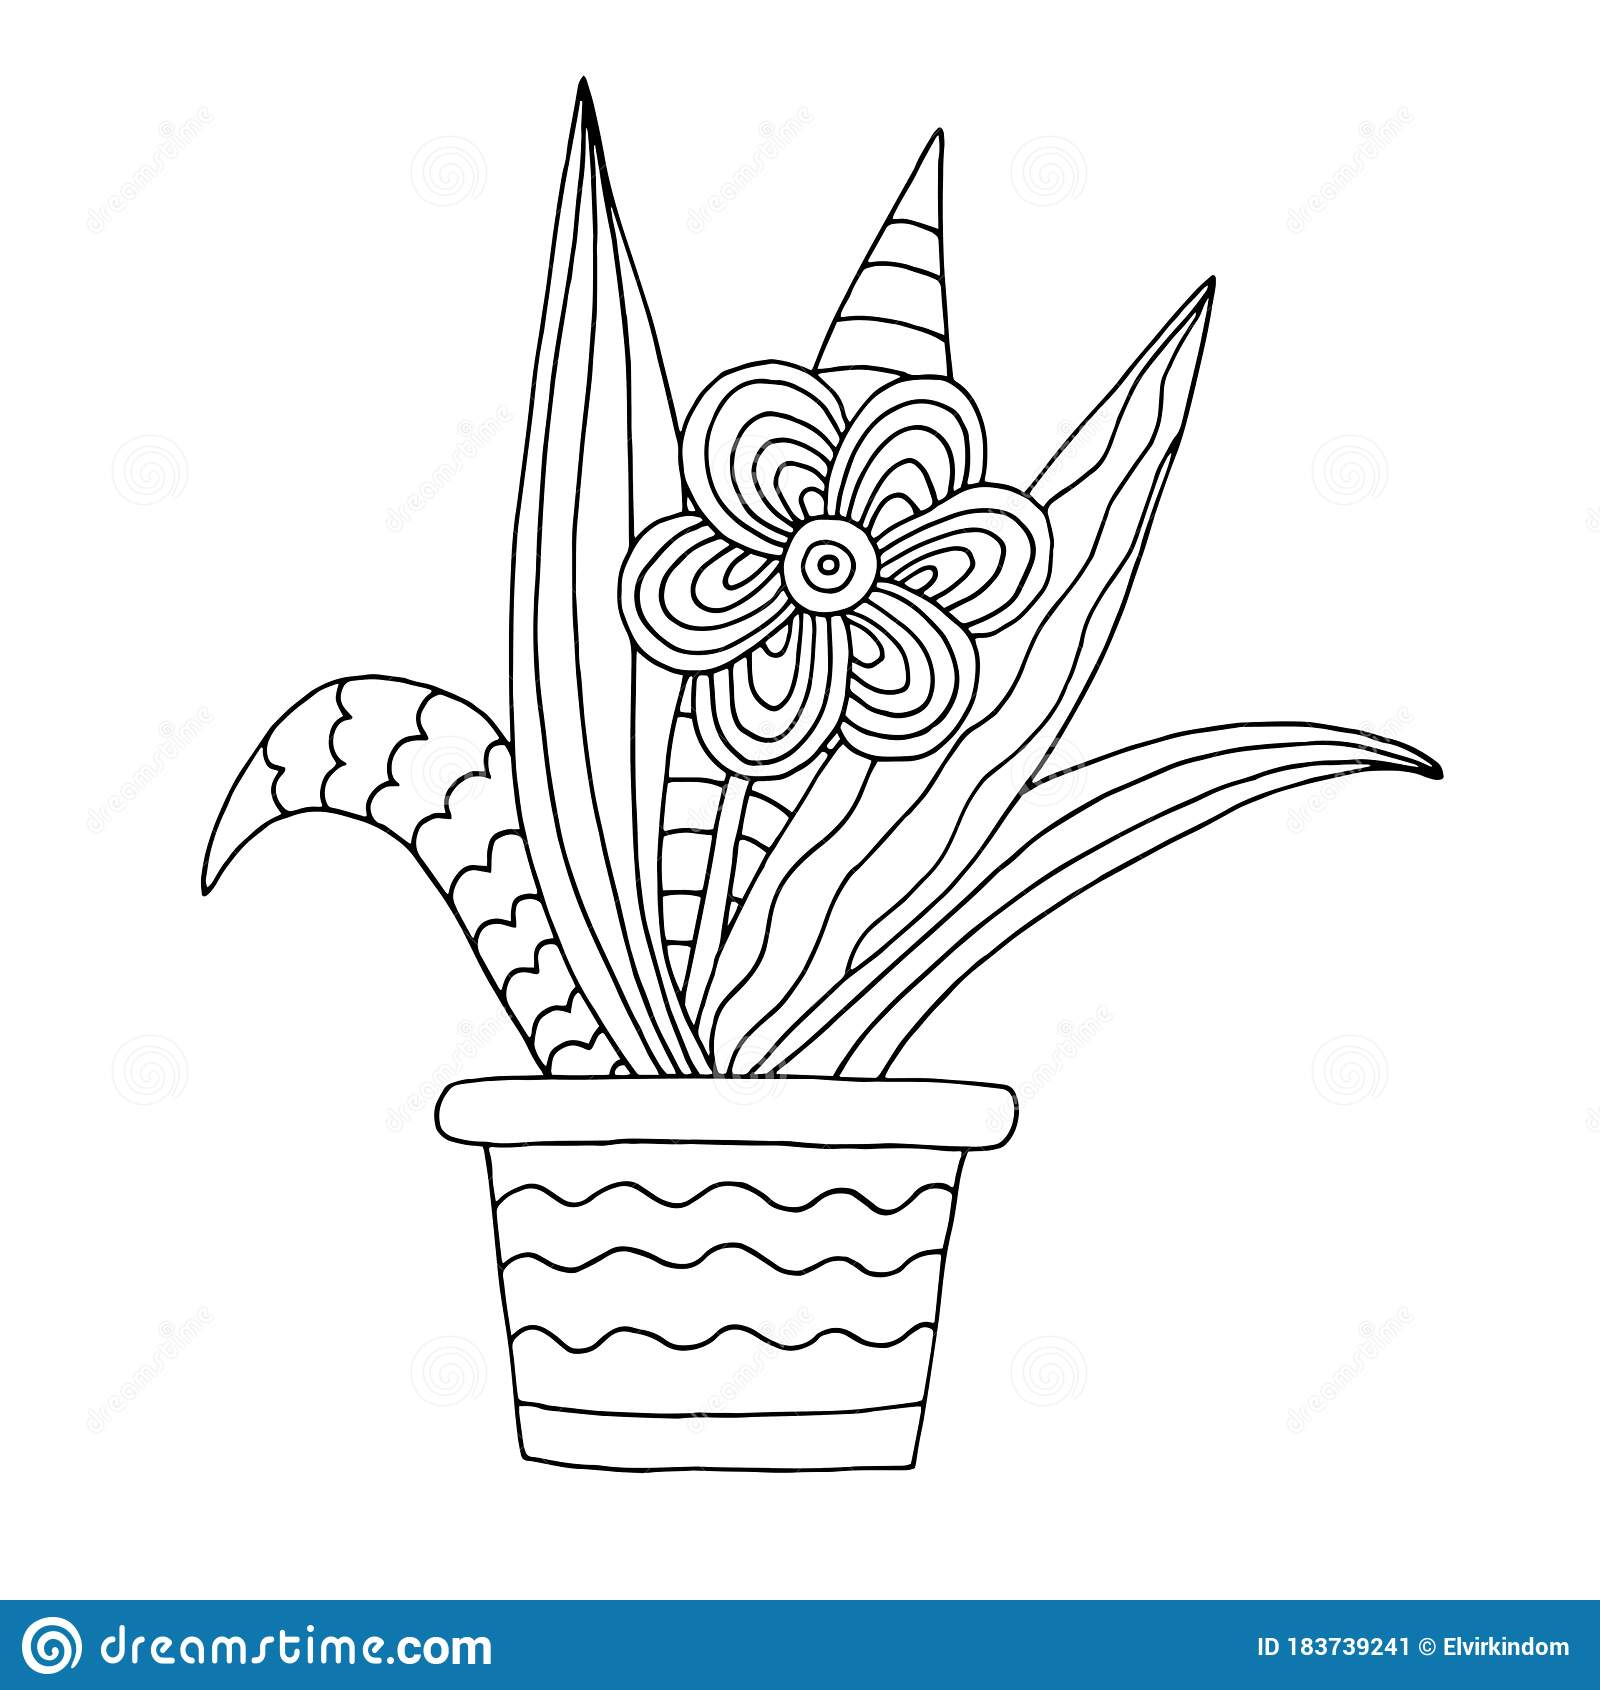 Hand Drawn Flower Pot Coloring Page Stock Vector Illustration Of Decorative Contour 183739241